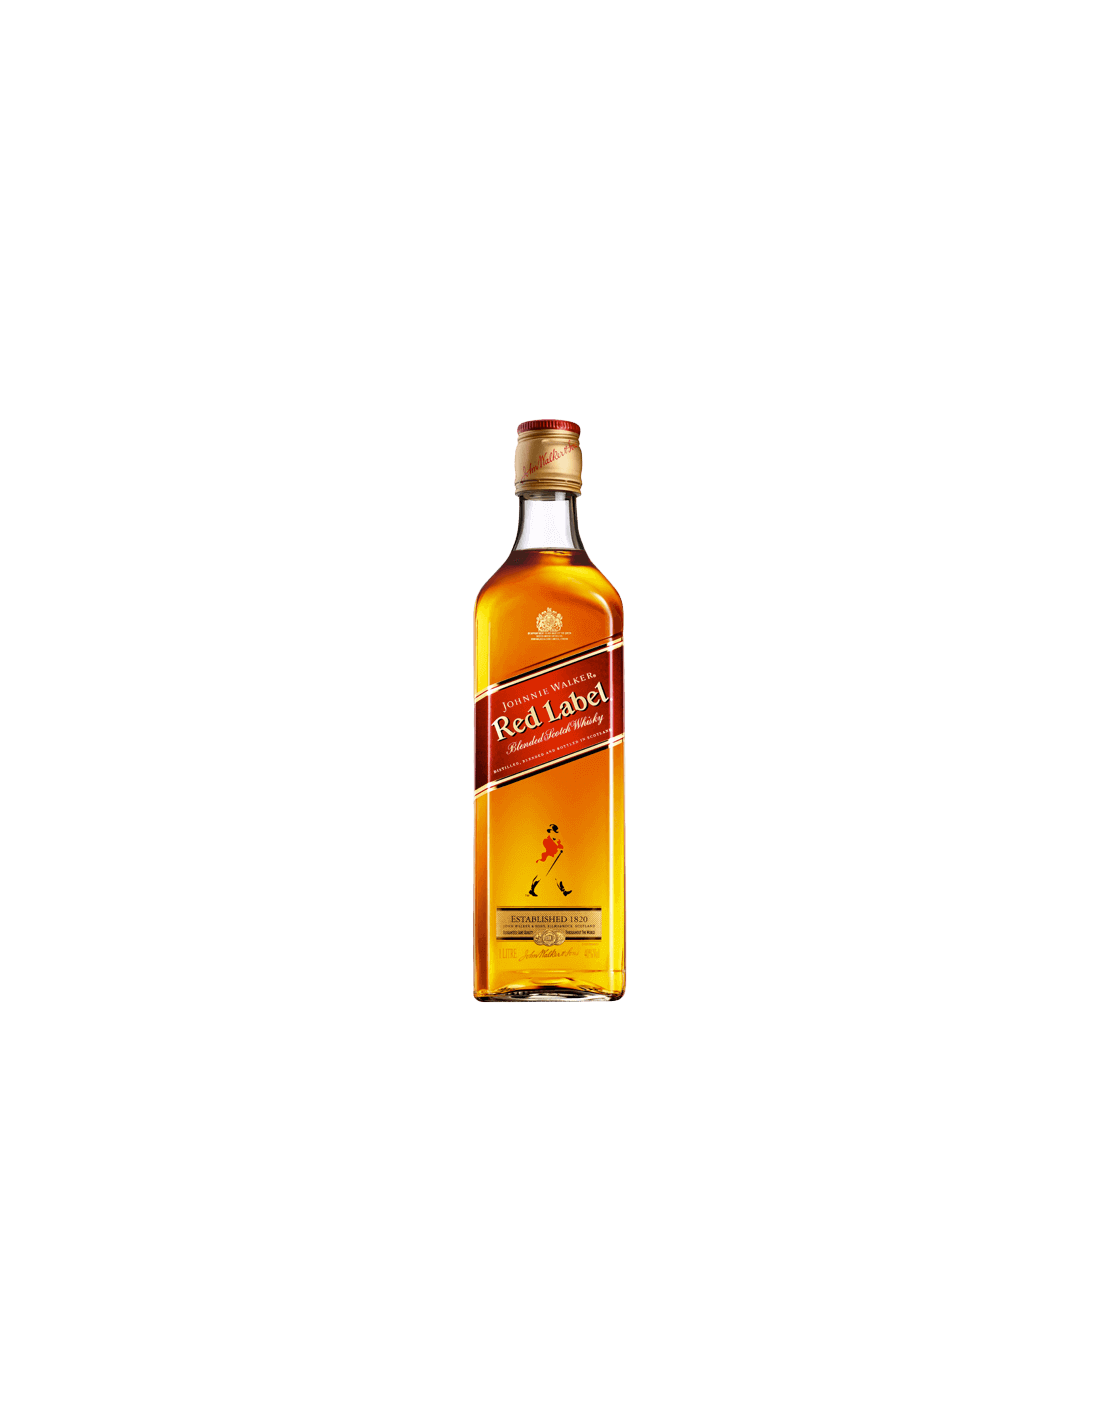 Blended Whisky Johnnie Walker Red Label, 40% alc., 1L, Scotia